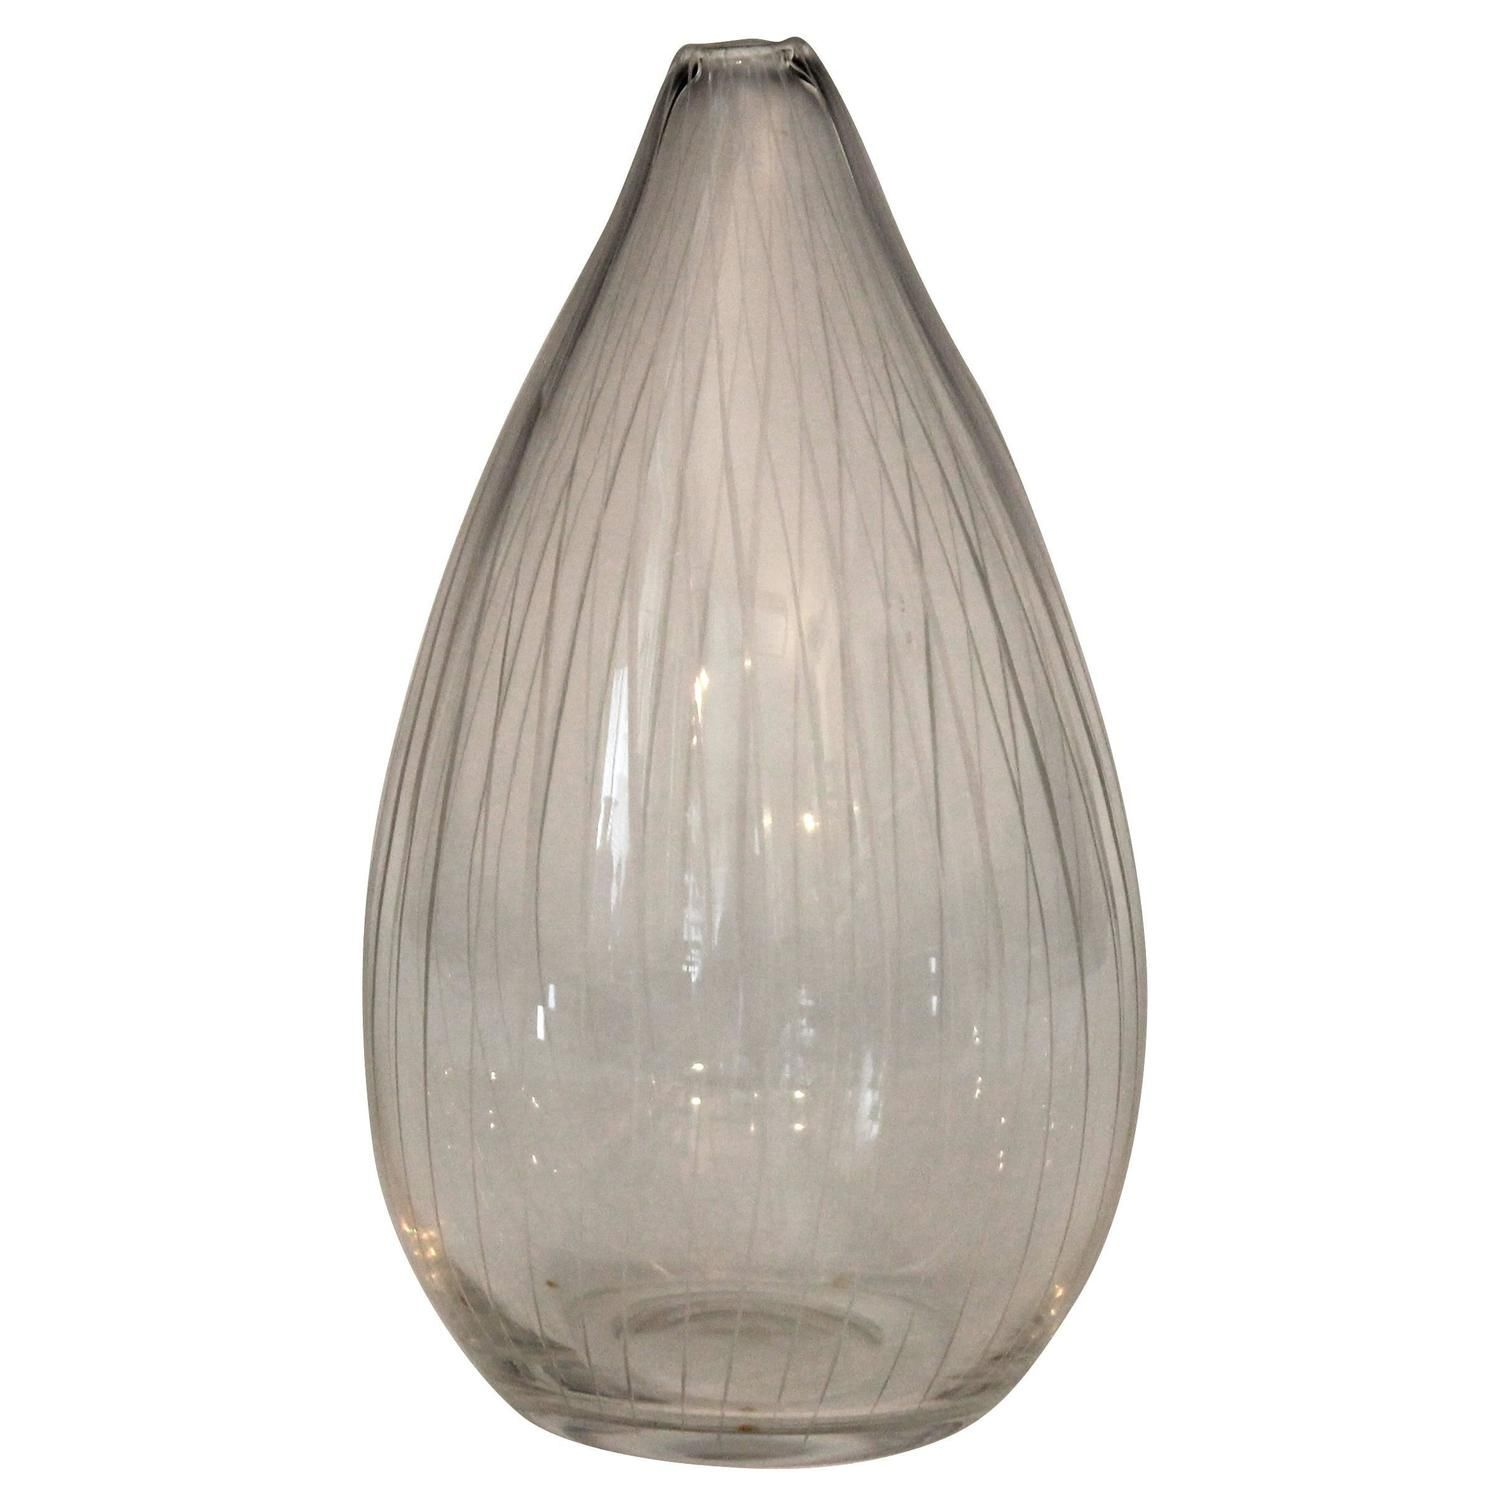 Tapio Wirkkala for Iittala Engraved Art Glass Finnish Mid Century Vase | From a unique collection of antique and modern vases and vessels at https://www.1stdibs.com/furniture/decorative-objects/vases-vessels/